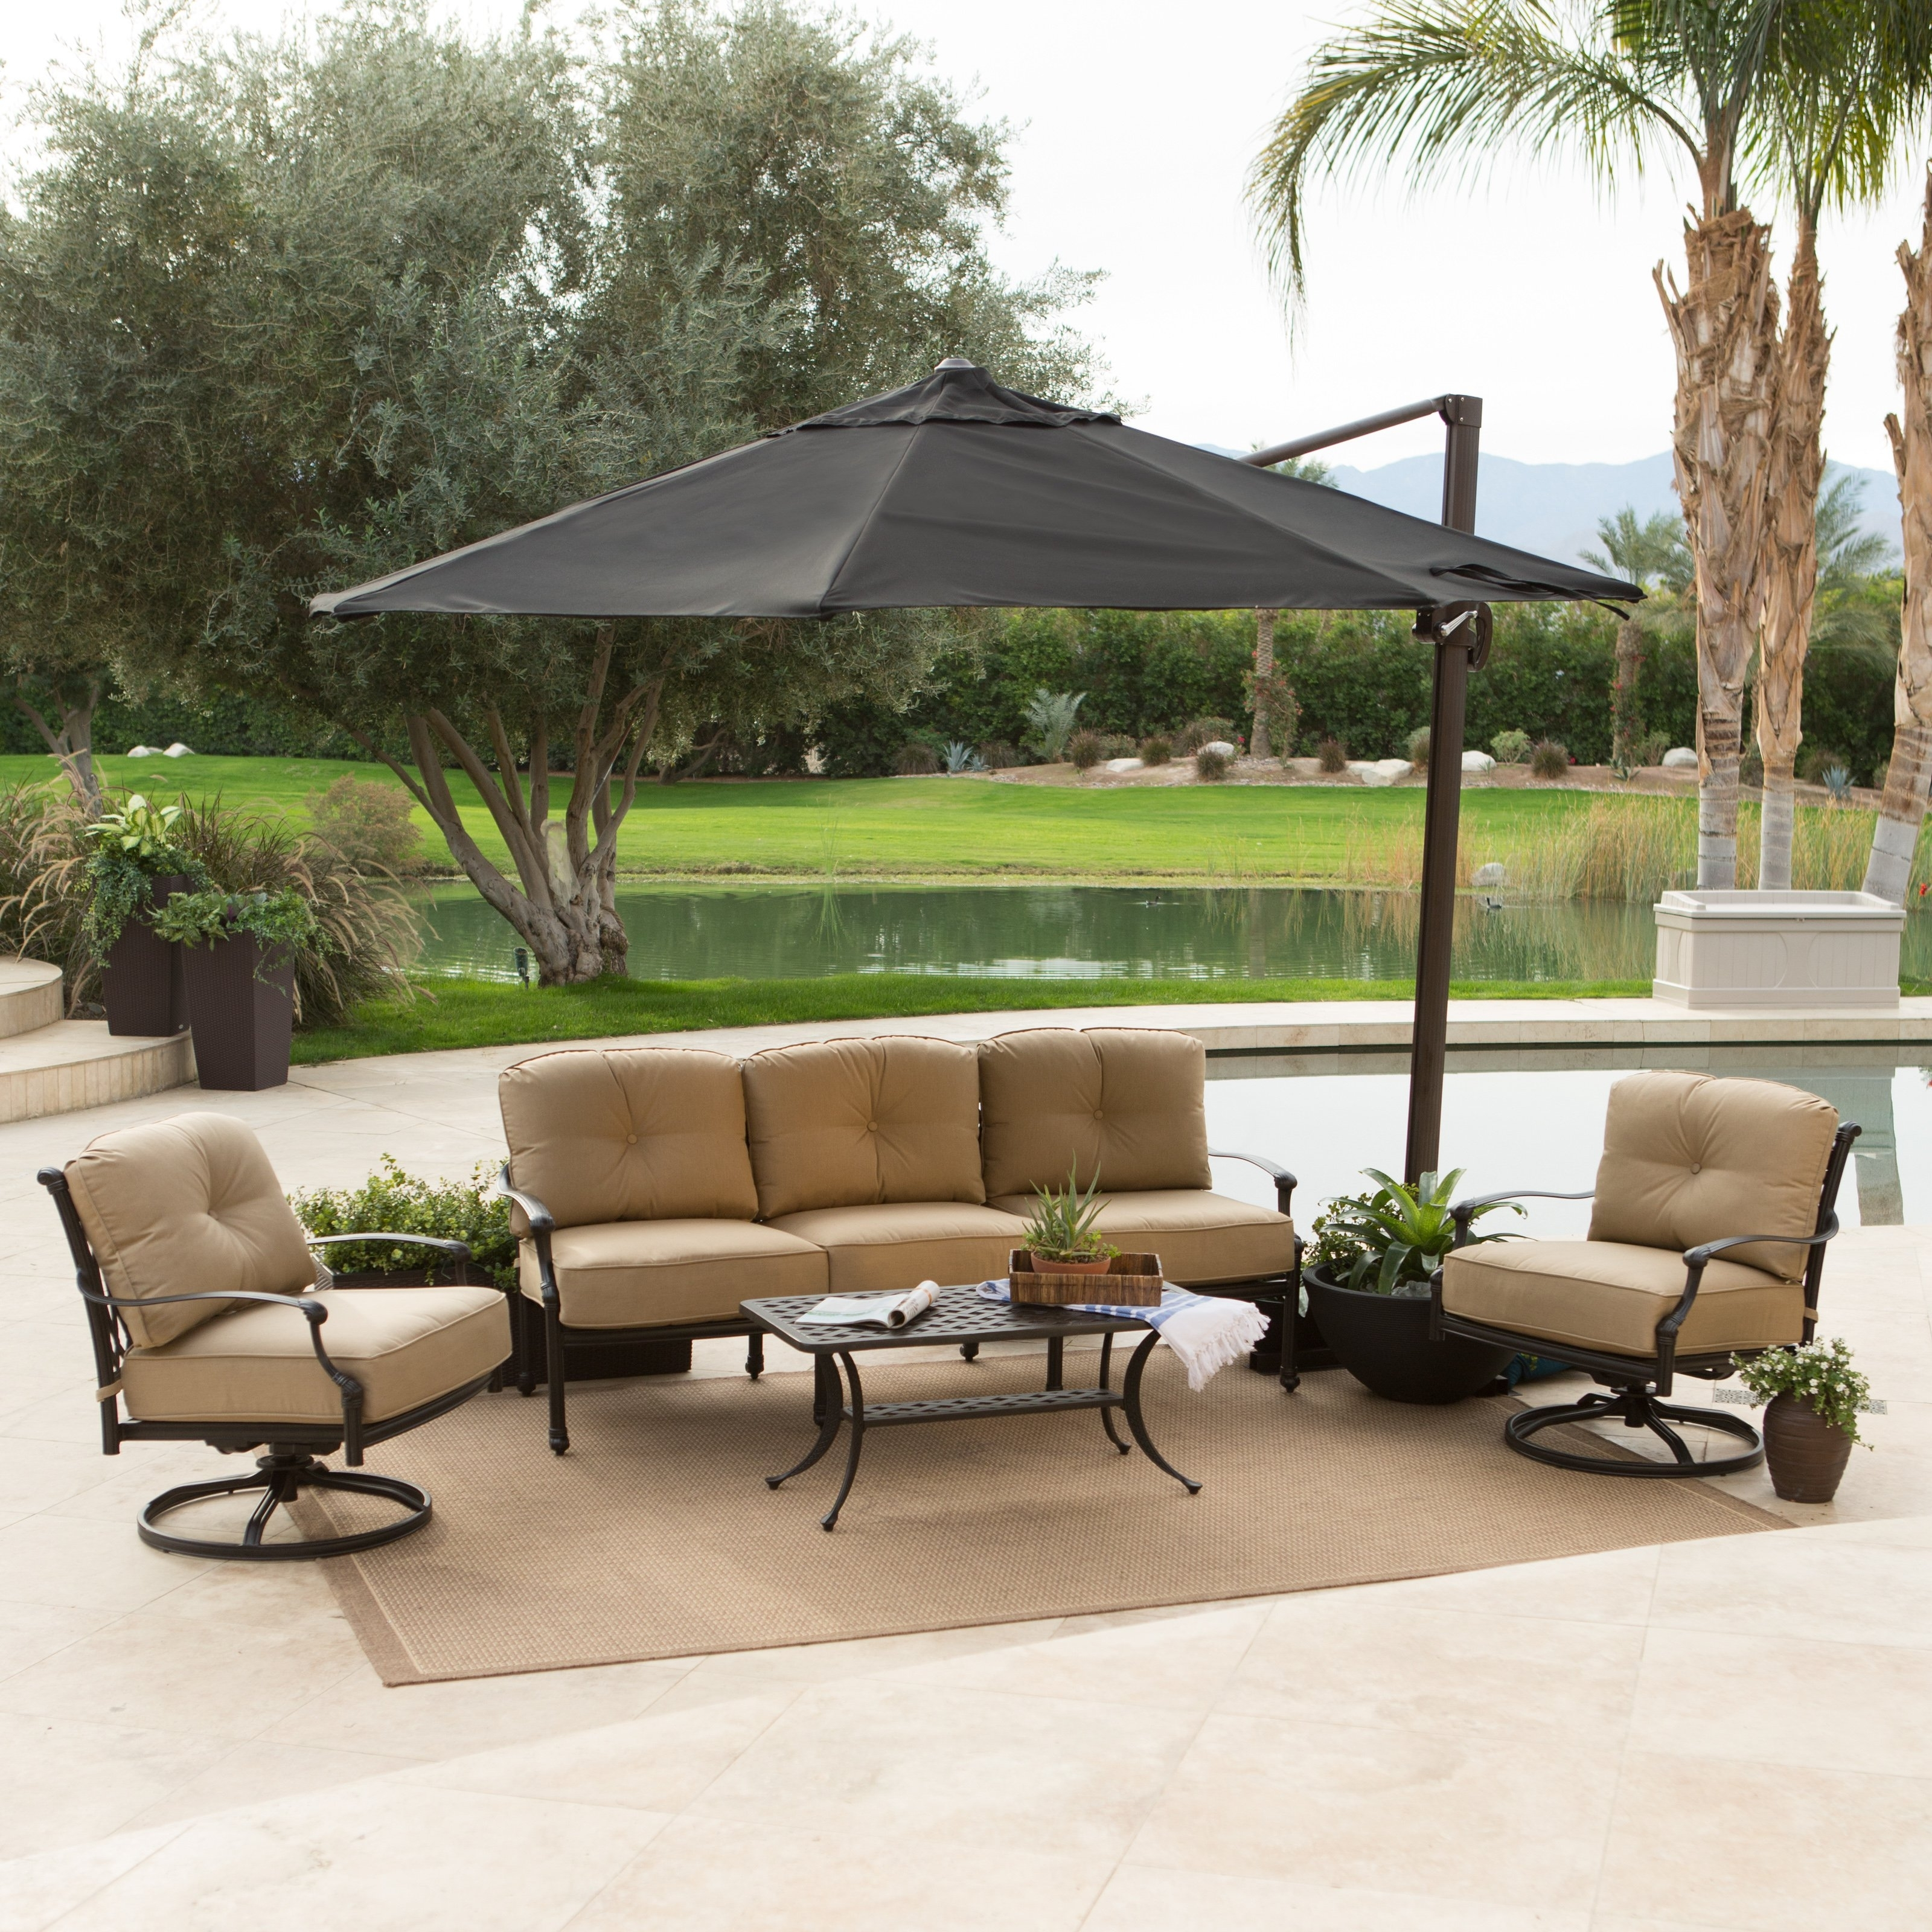 Popular Furniture: Coral Coast Offset Patio Umbrella Design With Brown Sofa With Regard To Coral Coast Offset Patio Umbrellas (View 8 of 20)